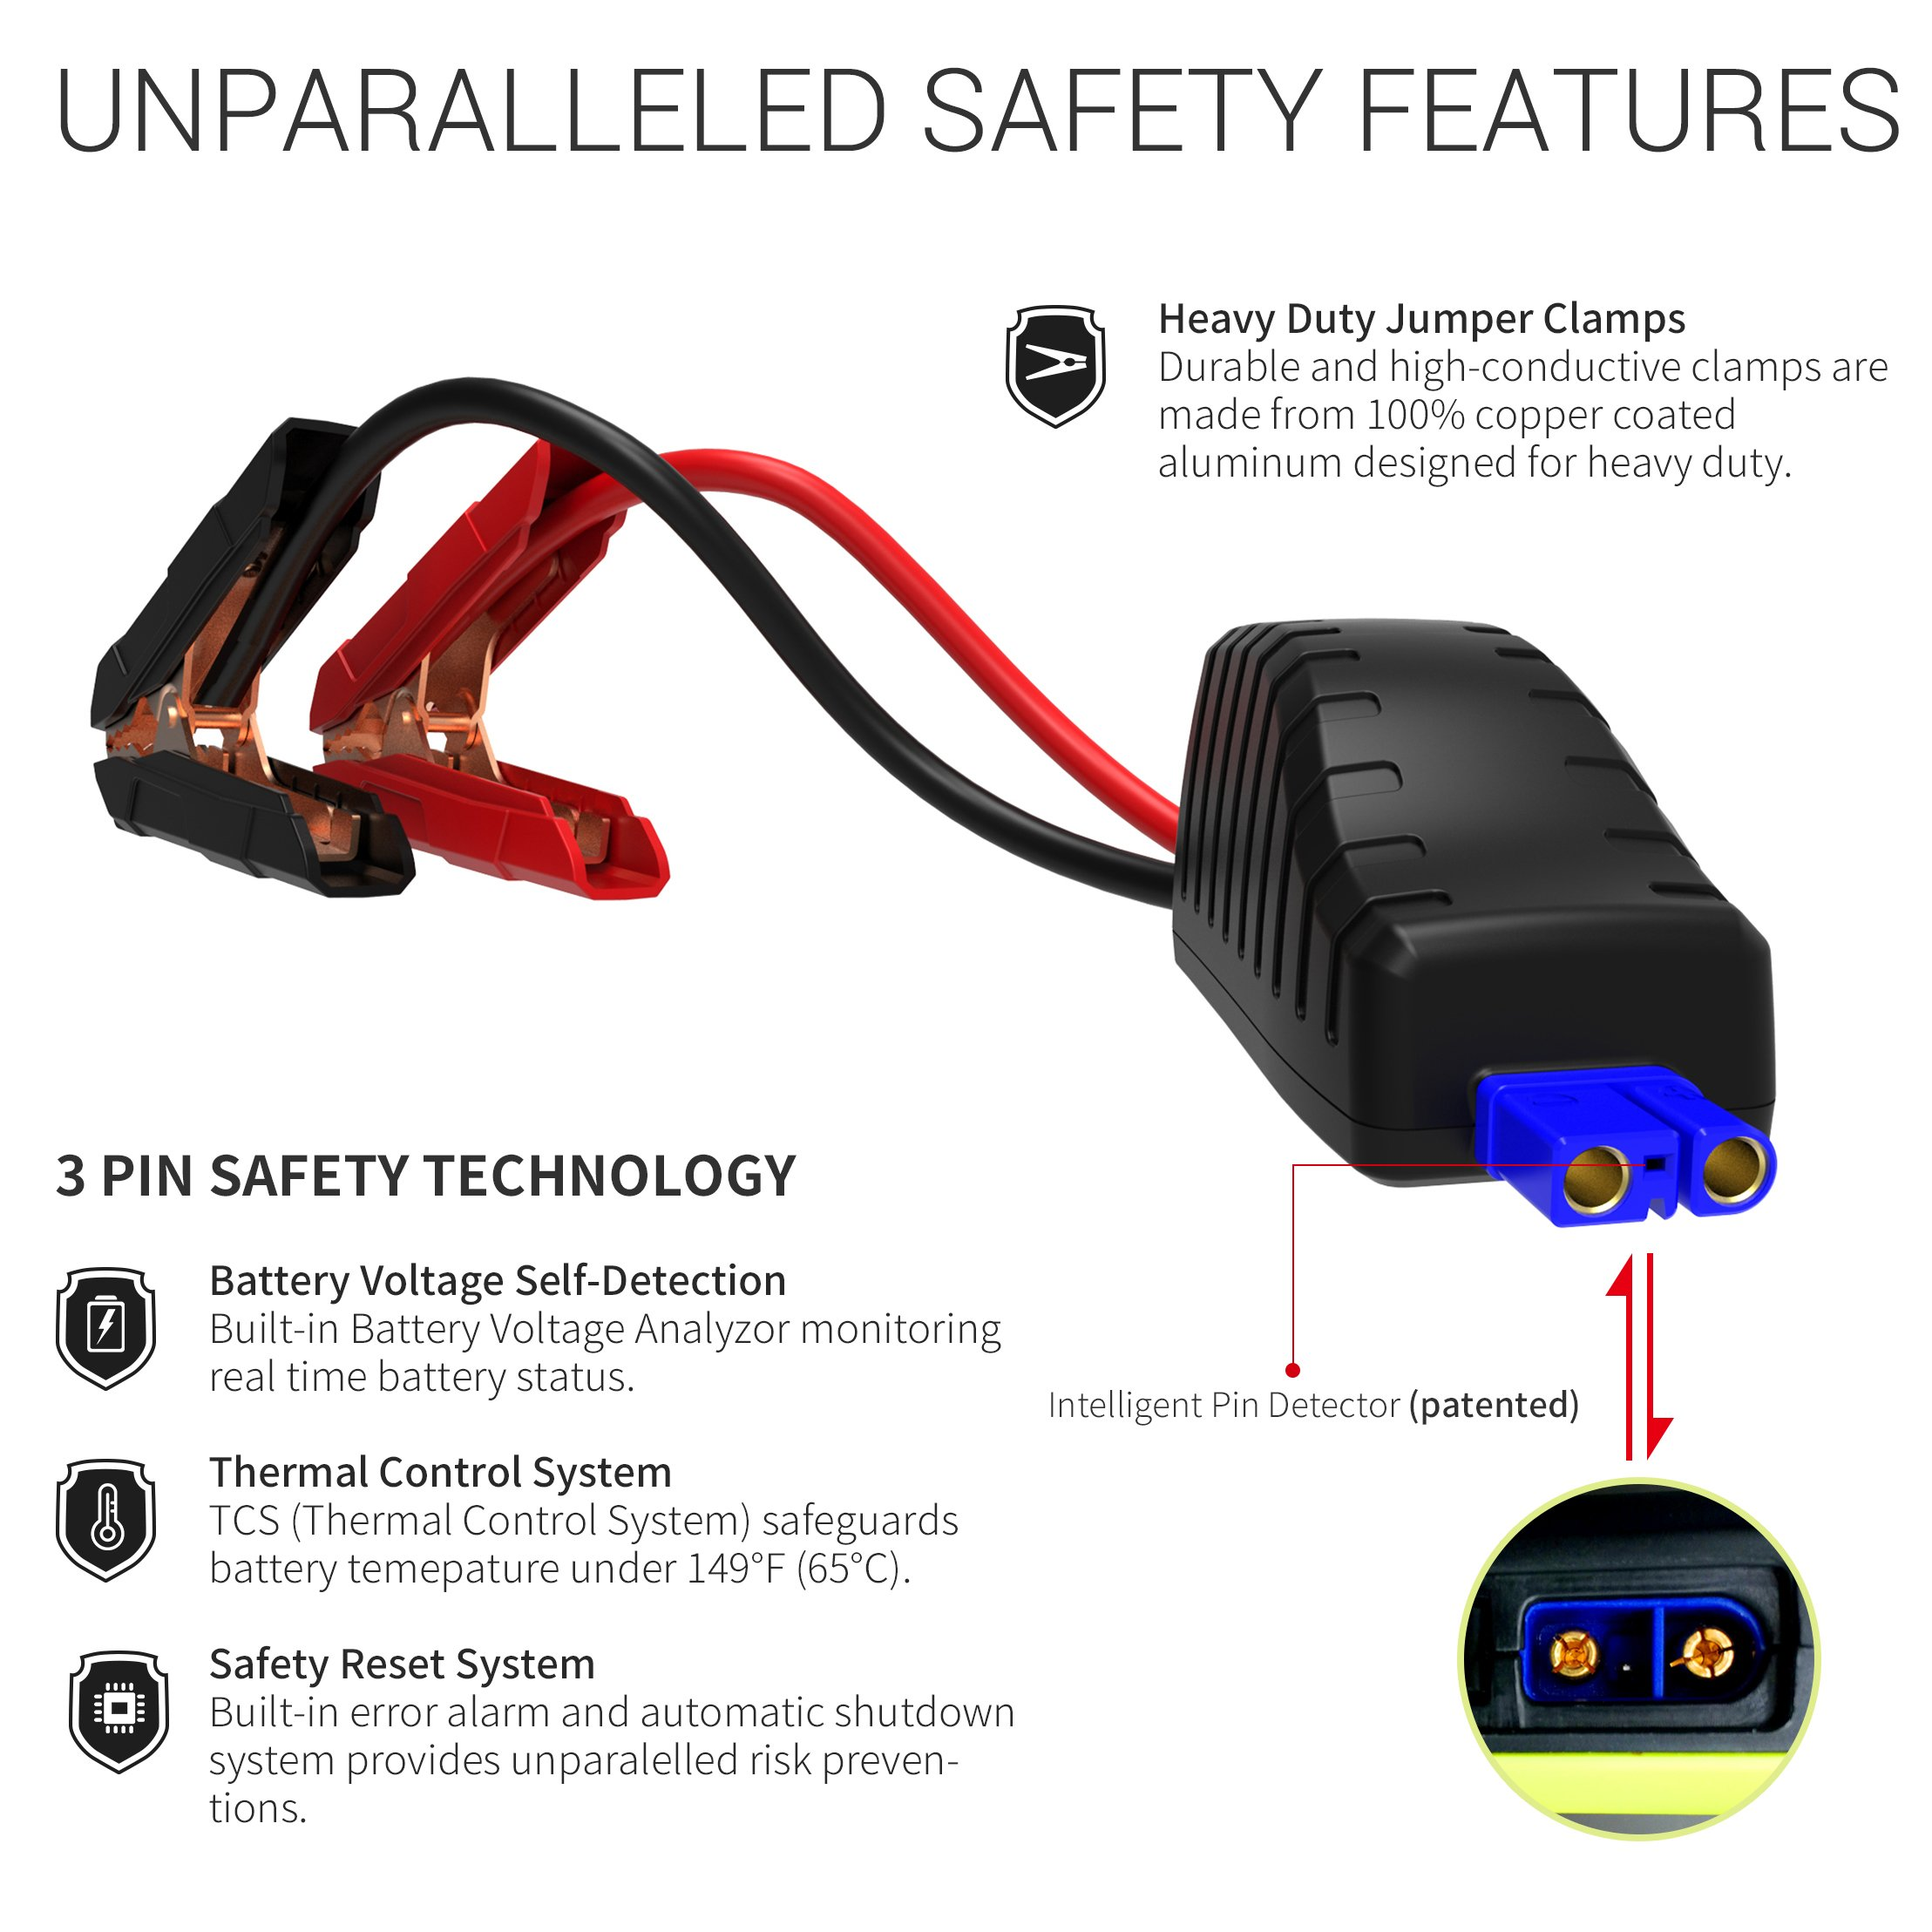 AUTOGEN 2000A Peak Portable Jump Starter for Vehicles (up to 8.0L Gas or 6.5L Diesel) & Quick Charge 3.0 Power Charger, with Mistake-Proof Intelligent Clamps for Cars Boats RVs & Mowers by AUTOGEN (Image #3)